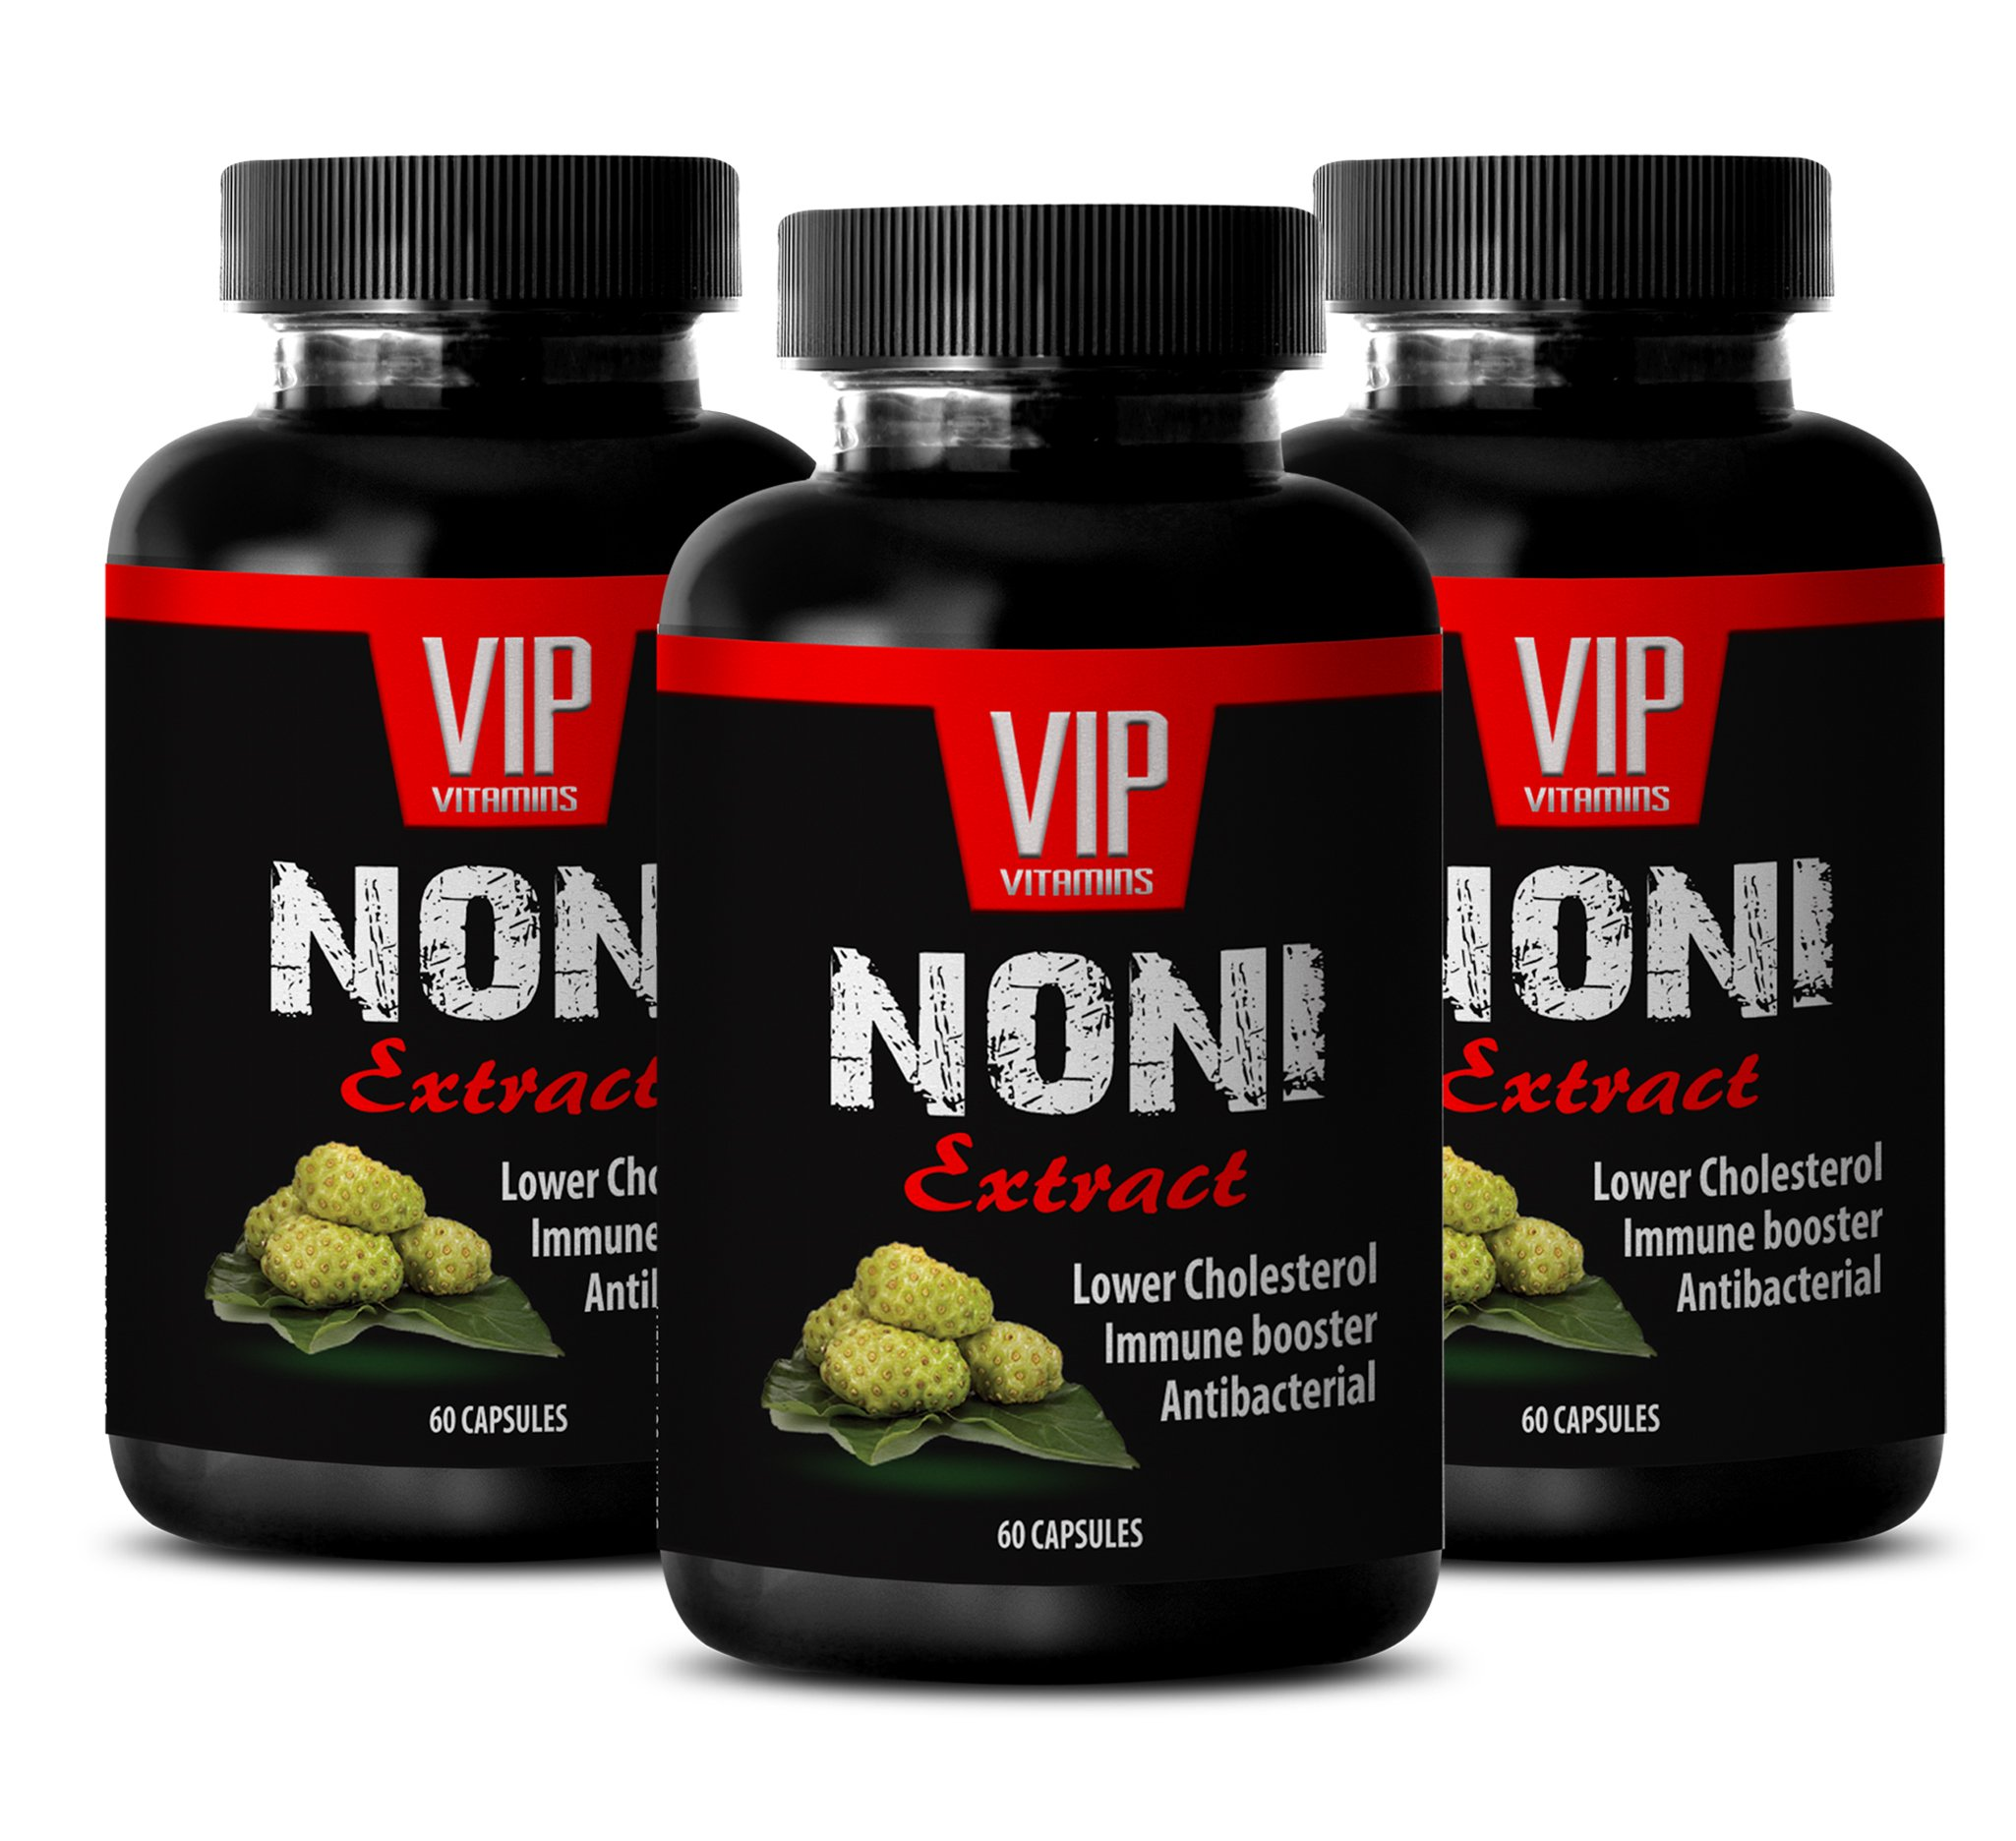 VIP VITAMINS Indian mulberry - NONI EXTRACT - Anti weight - 3 Bottles 180 Capsules